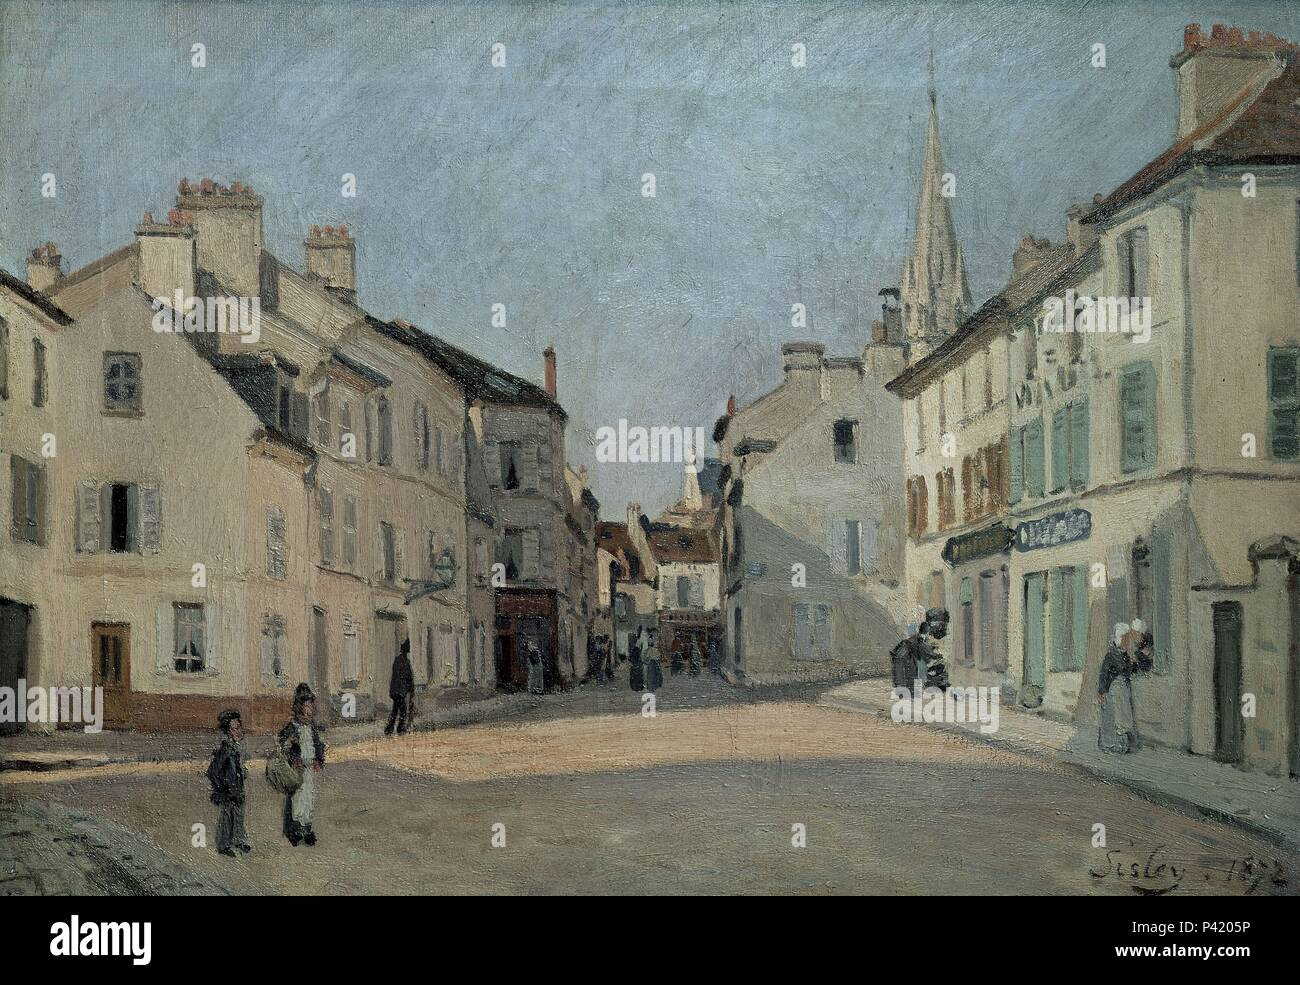 PLAZA DE ARGENTEUIL-1872     46x65. Author: Alfred Sisley (1839-1899). Location: MUSEE D'ORSAY, FRANCE. - Stock Image